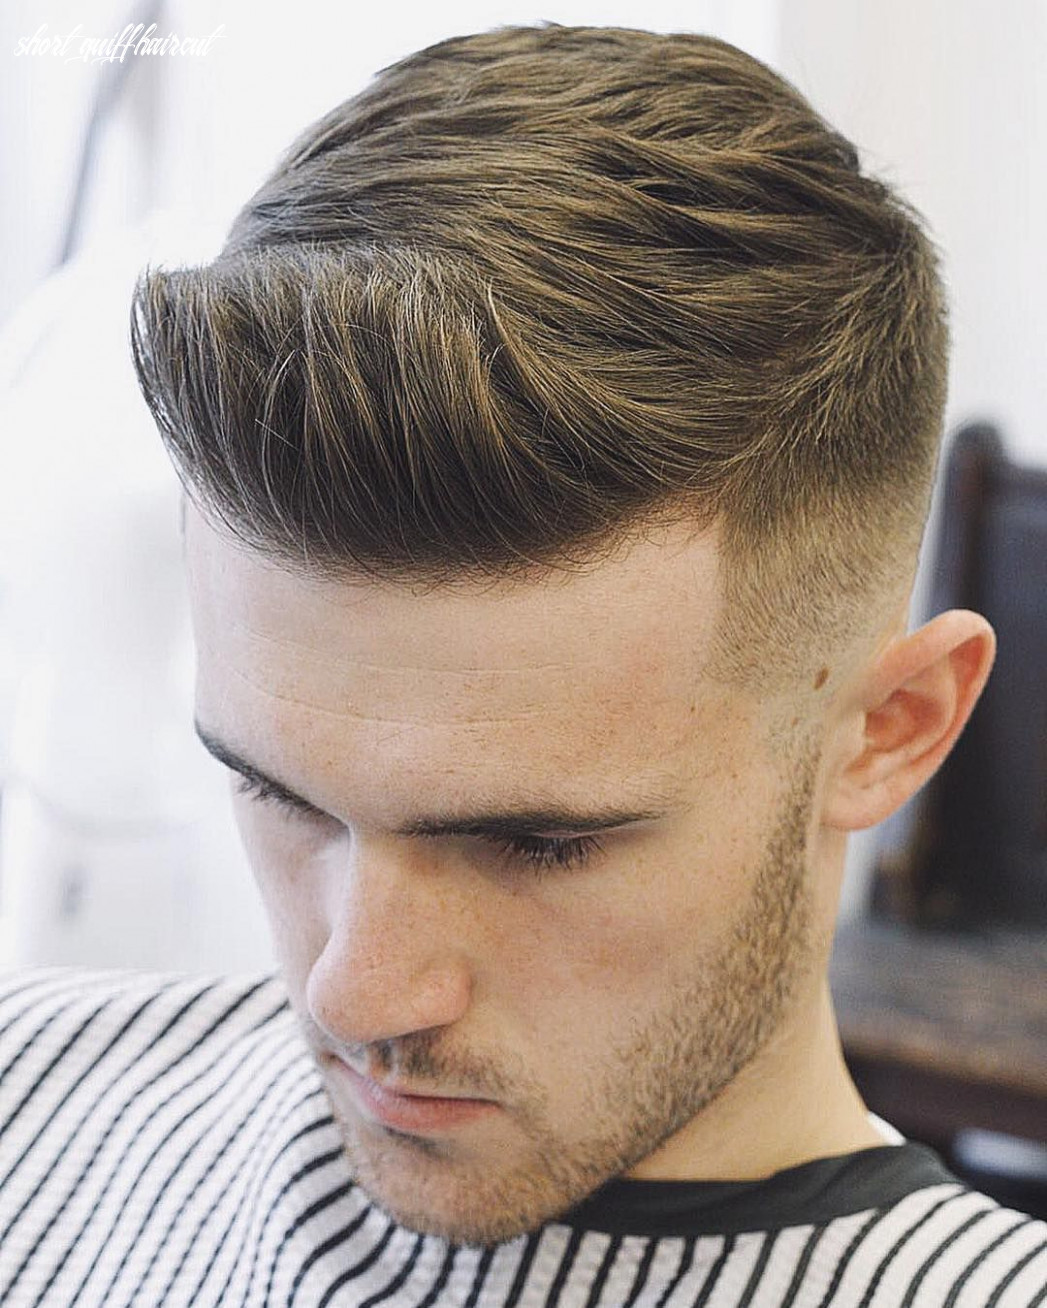 10 new hairstyles for men (10 update)   mens hairstyles short